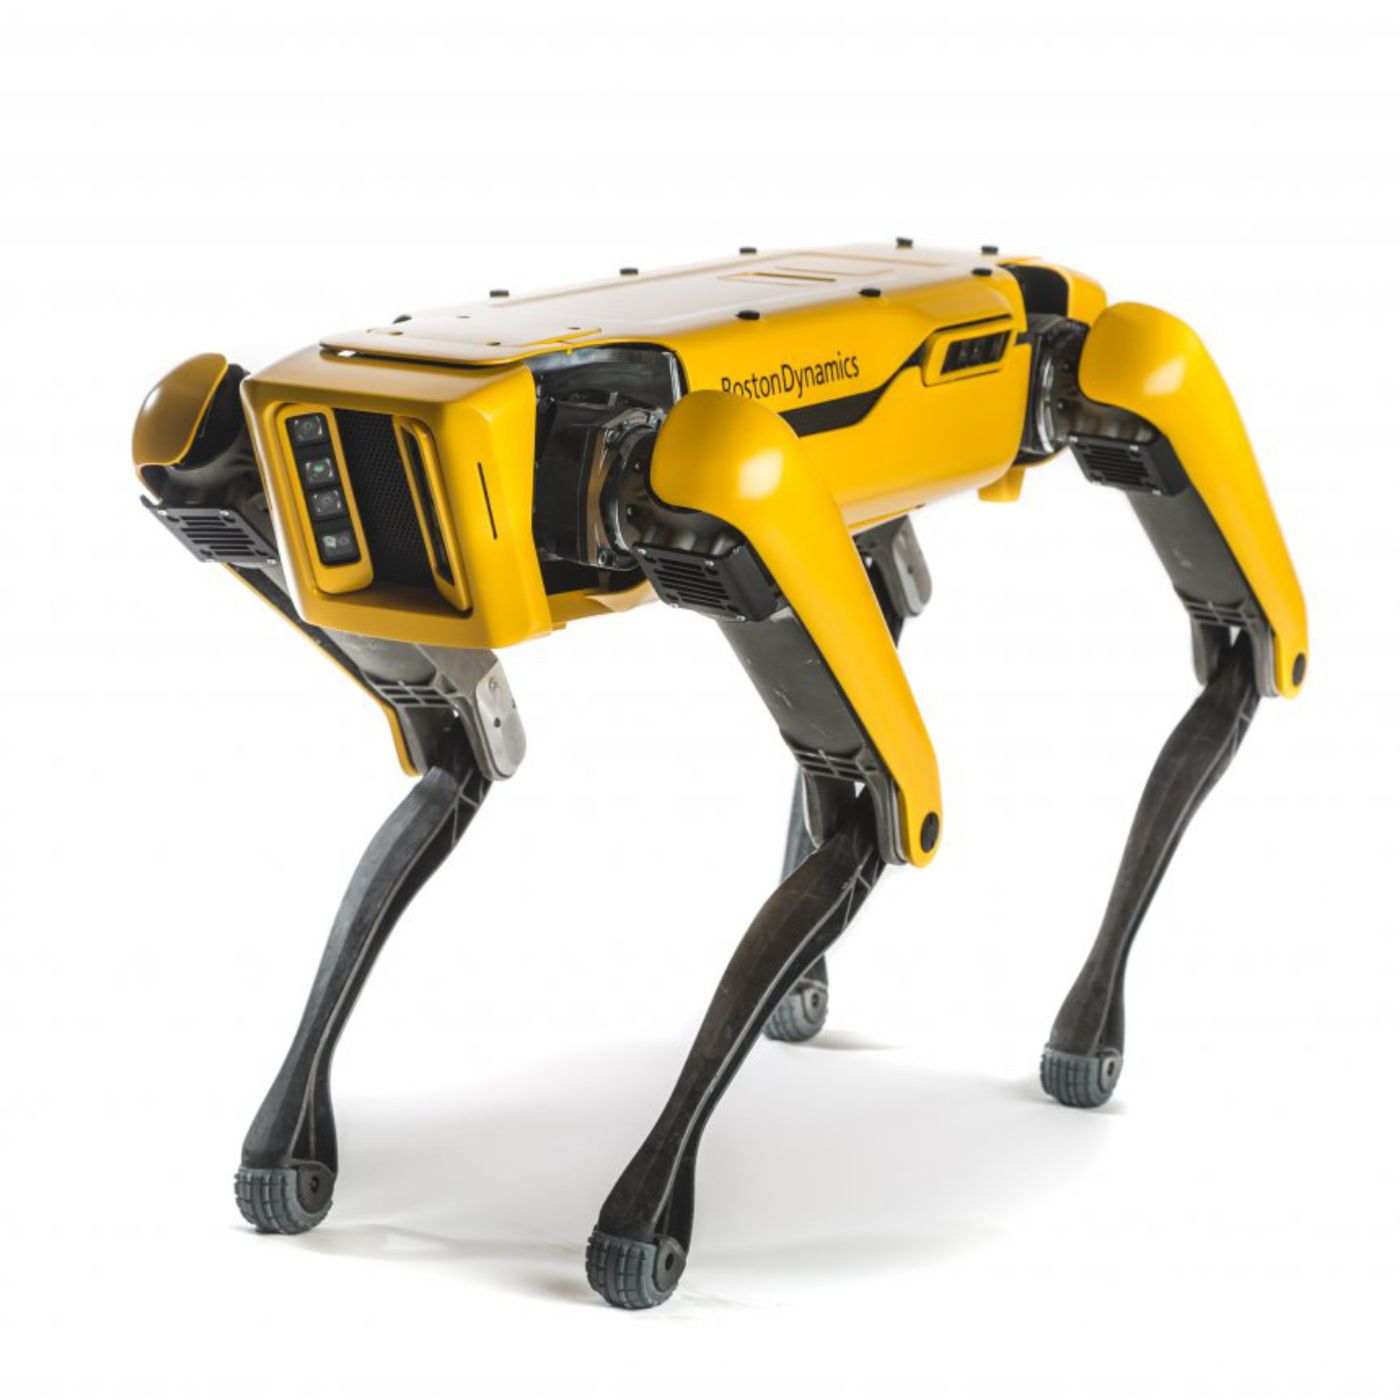 Boston Dynamics' SpotMini robot can haul vehicles, too - The